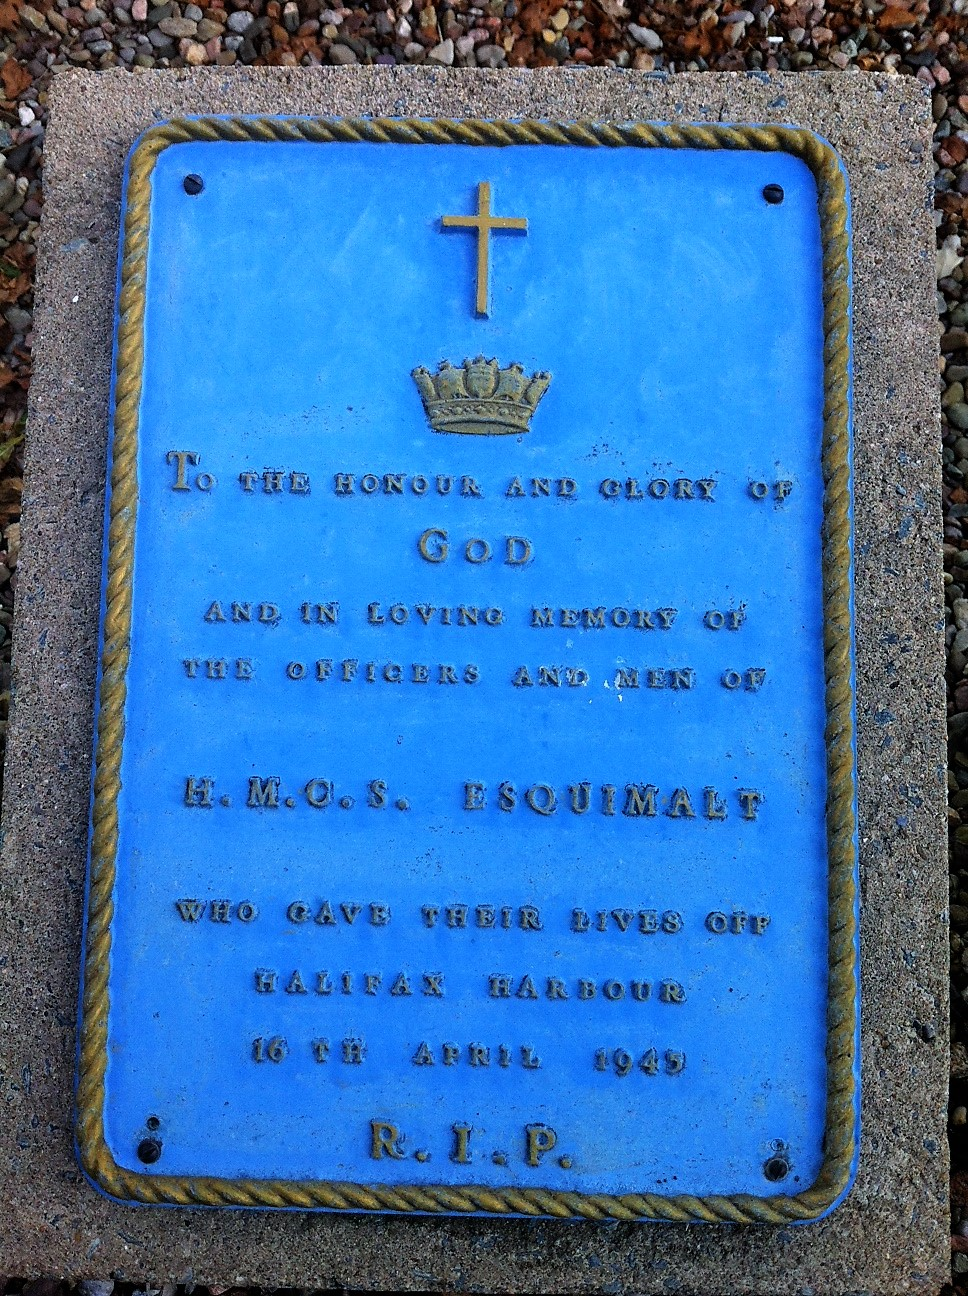 Memorial– The memorial plaque at Canadian Forces Base Halifax to HMCS Esquimalt, the Royal Canadian Navy minesweeper in which Albert Kynman was serving, and who was killed when the ship was sunk by a German U-boat on 16 April 1945 off Halifax.